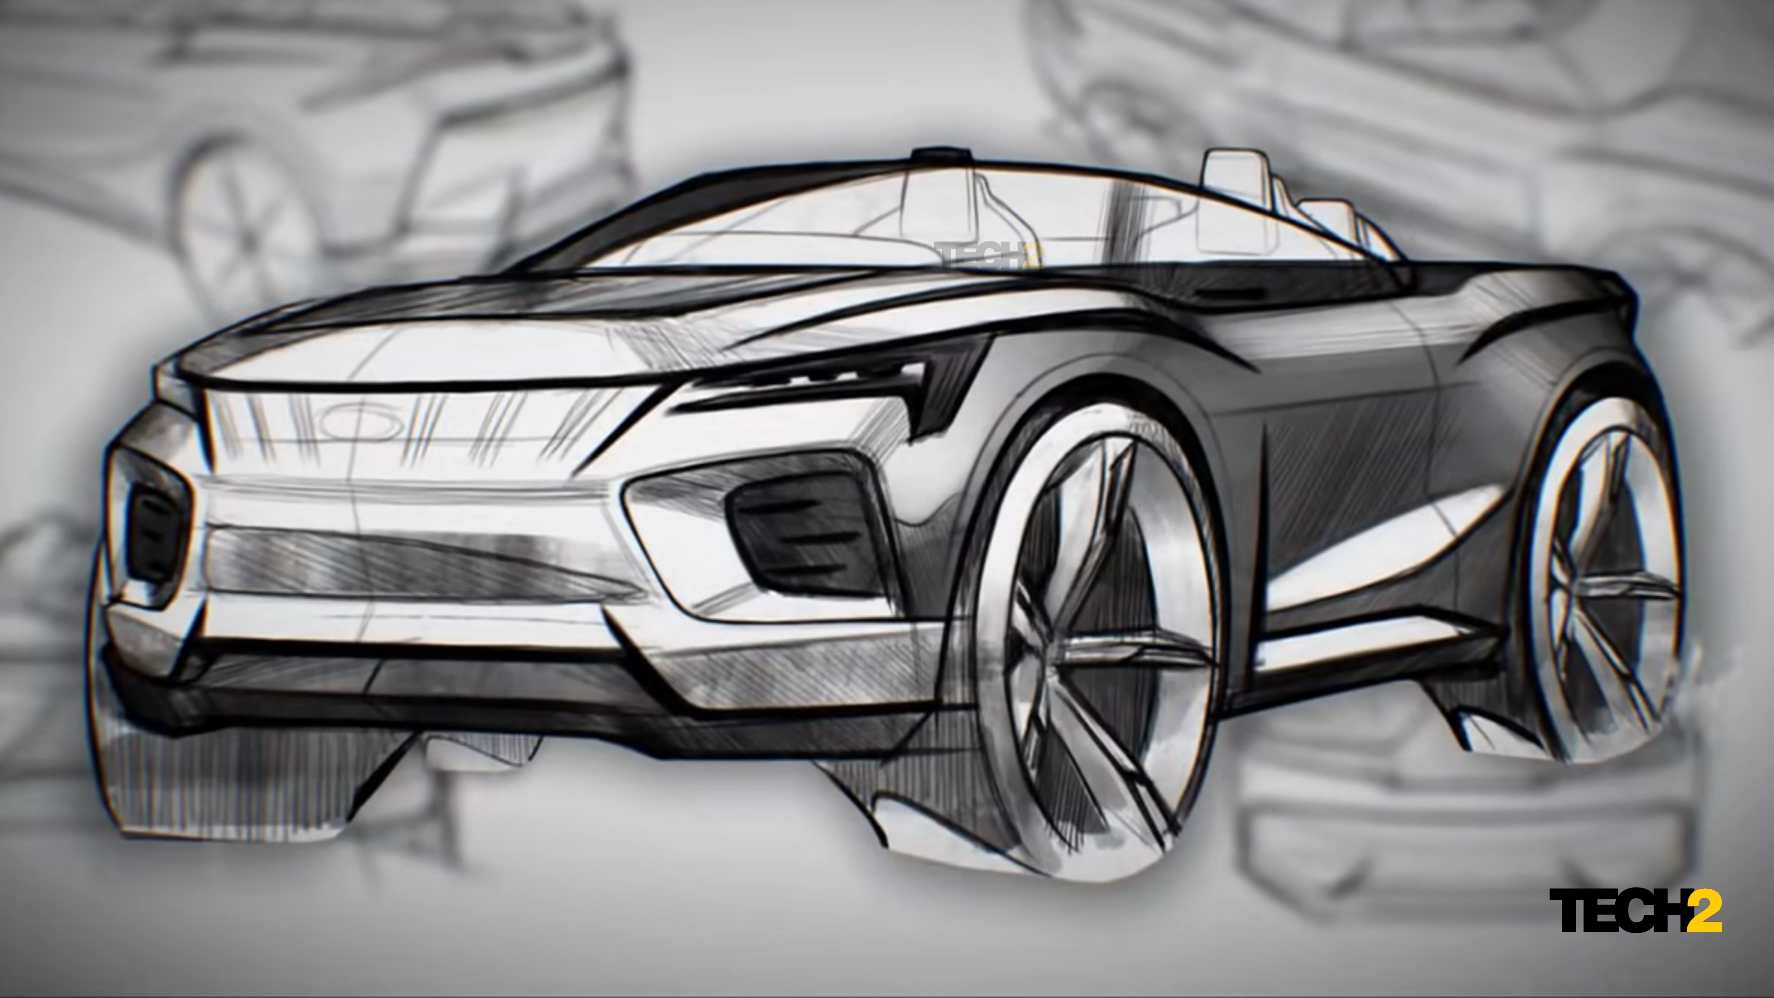 Mahindra sets up Advanced Design Center in the UK to design future cars, SUVs - Technology News, Firstpost